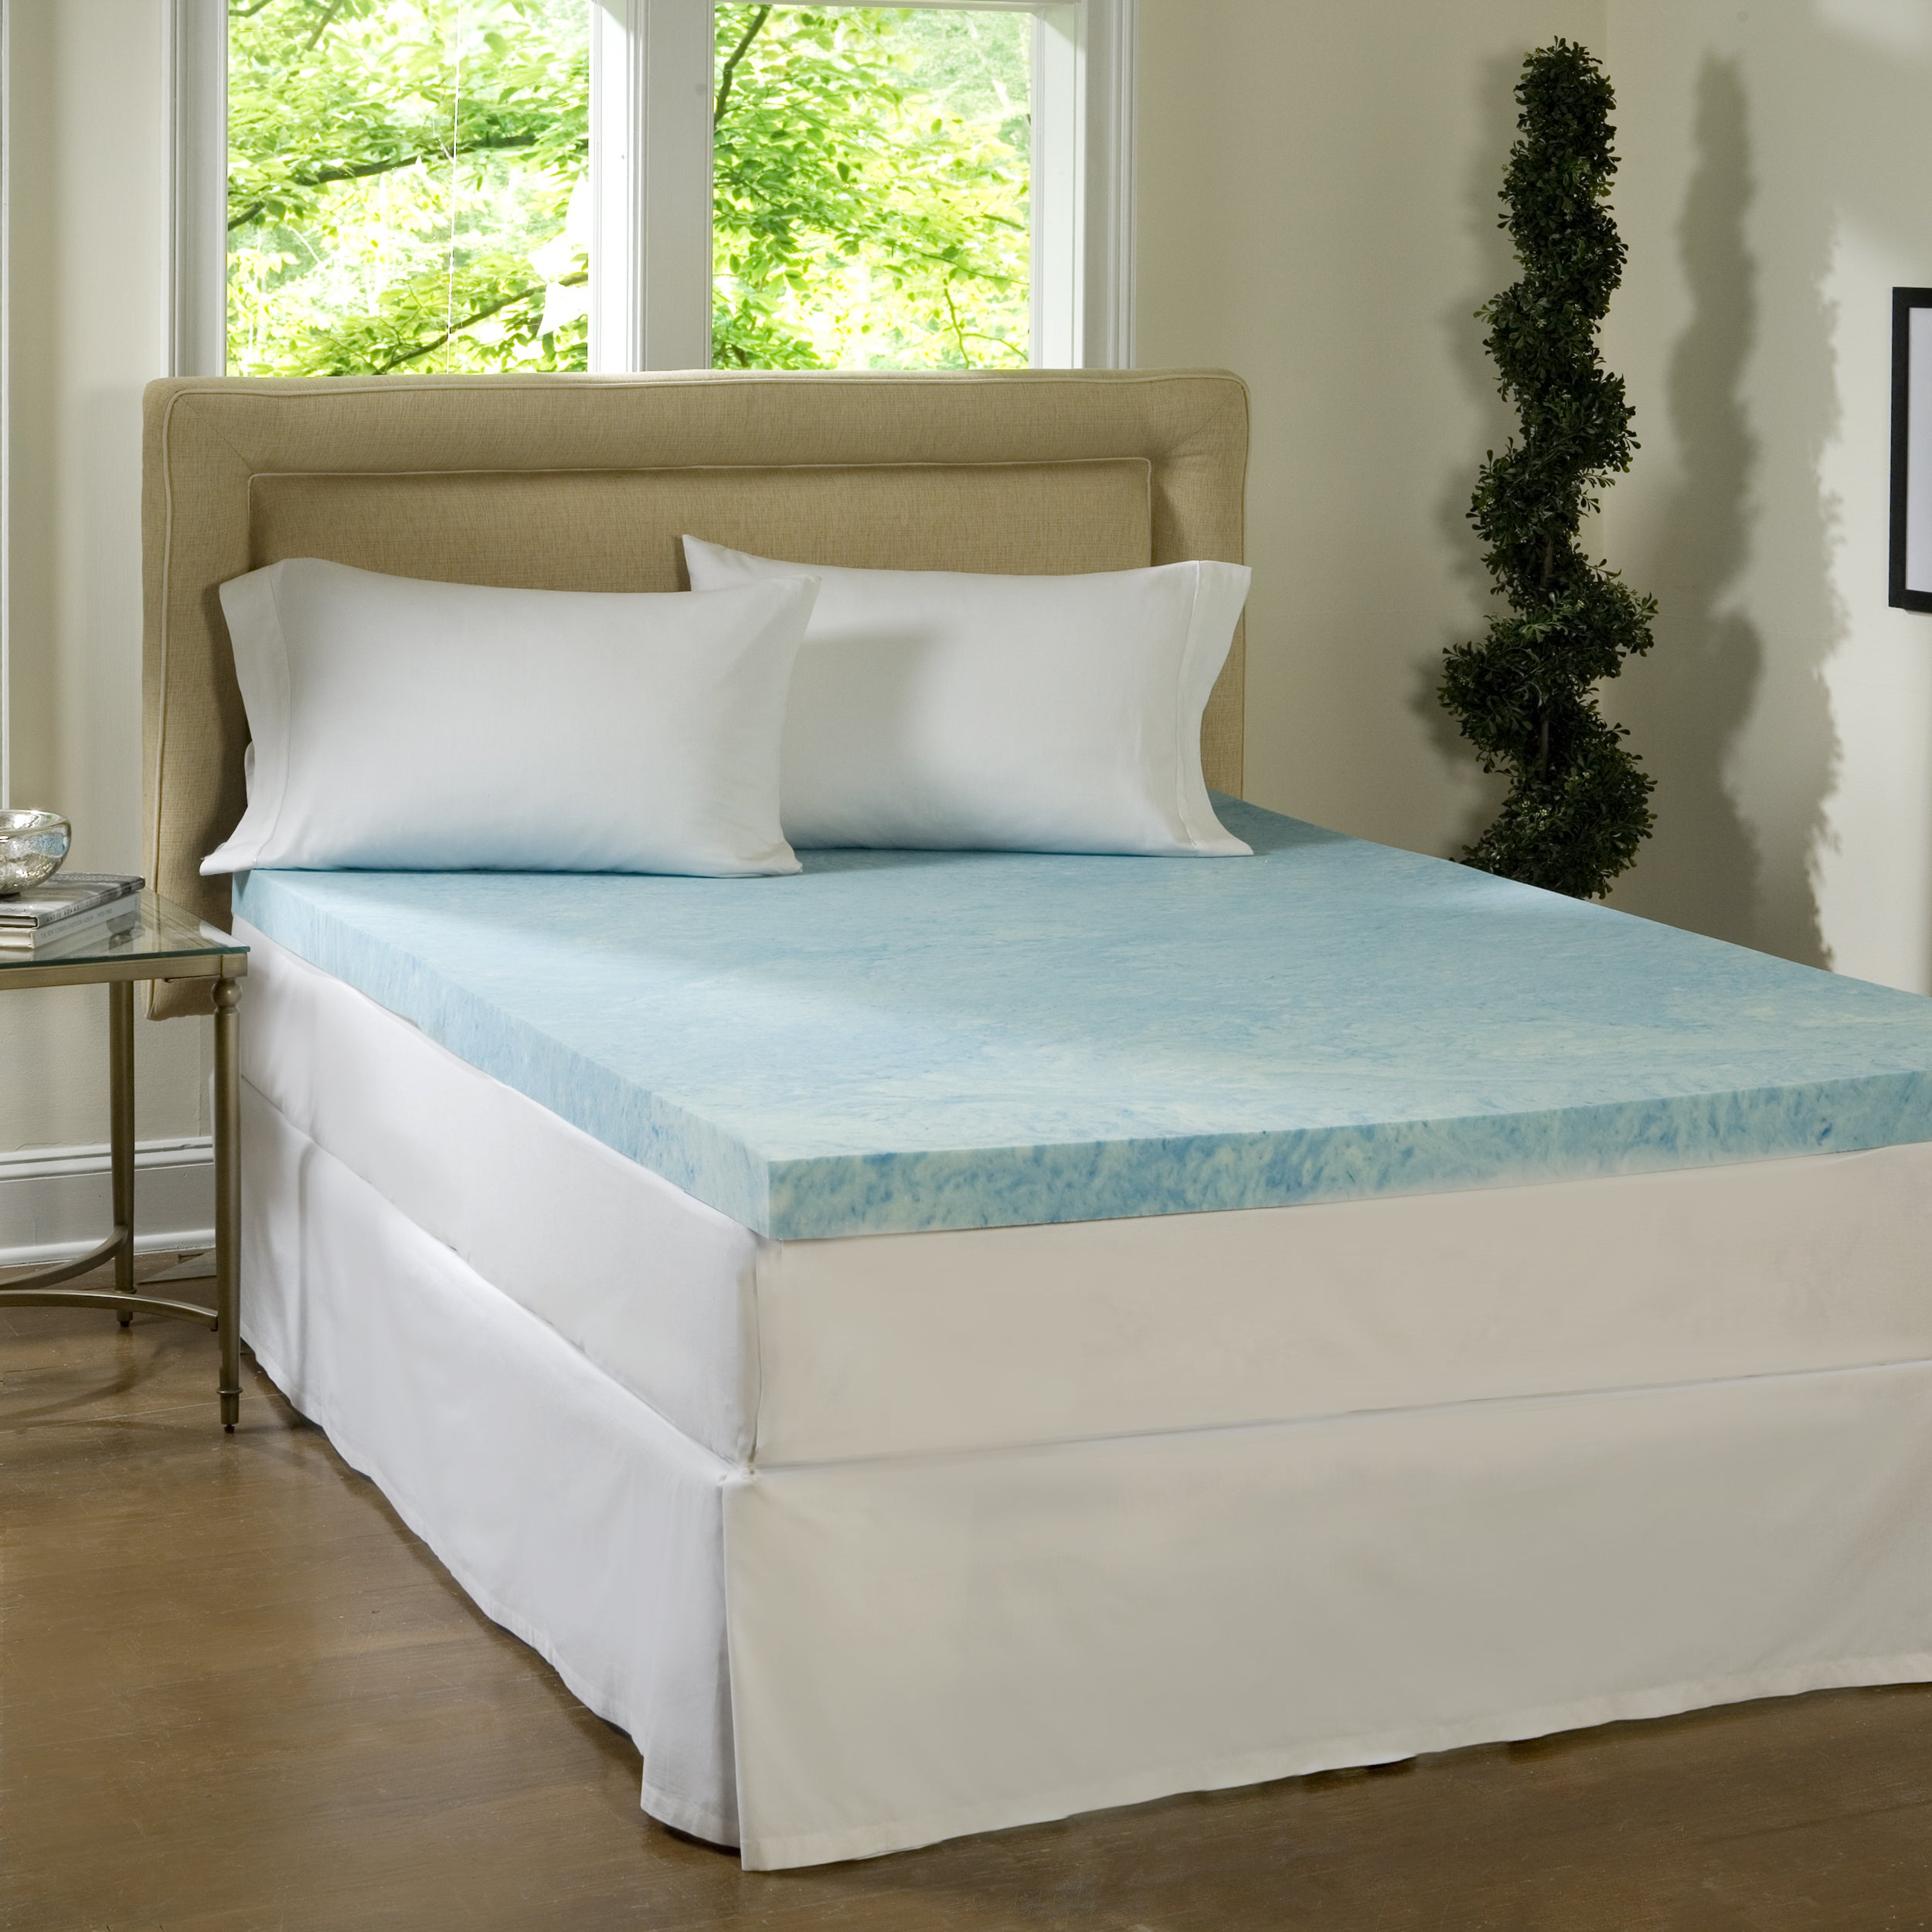 4e8f76dbafb41 ComforPedic Loft from Beautyrest 2-inch Flat Gel Memory Foam Mattress Topper